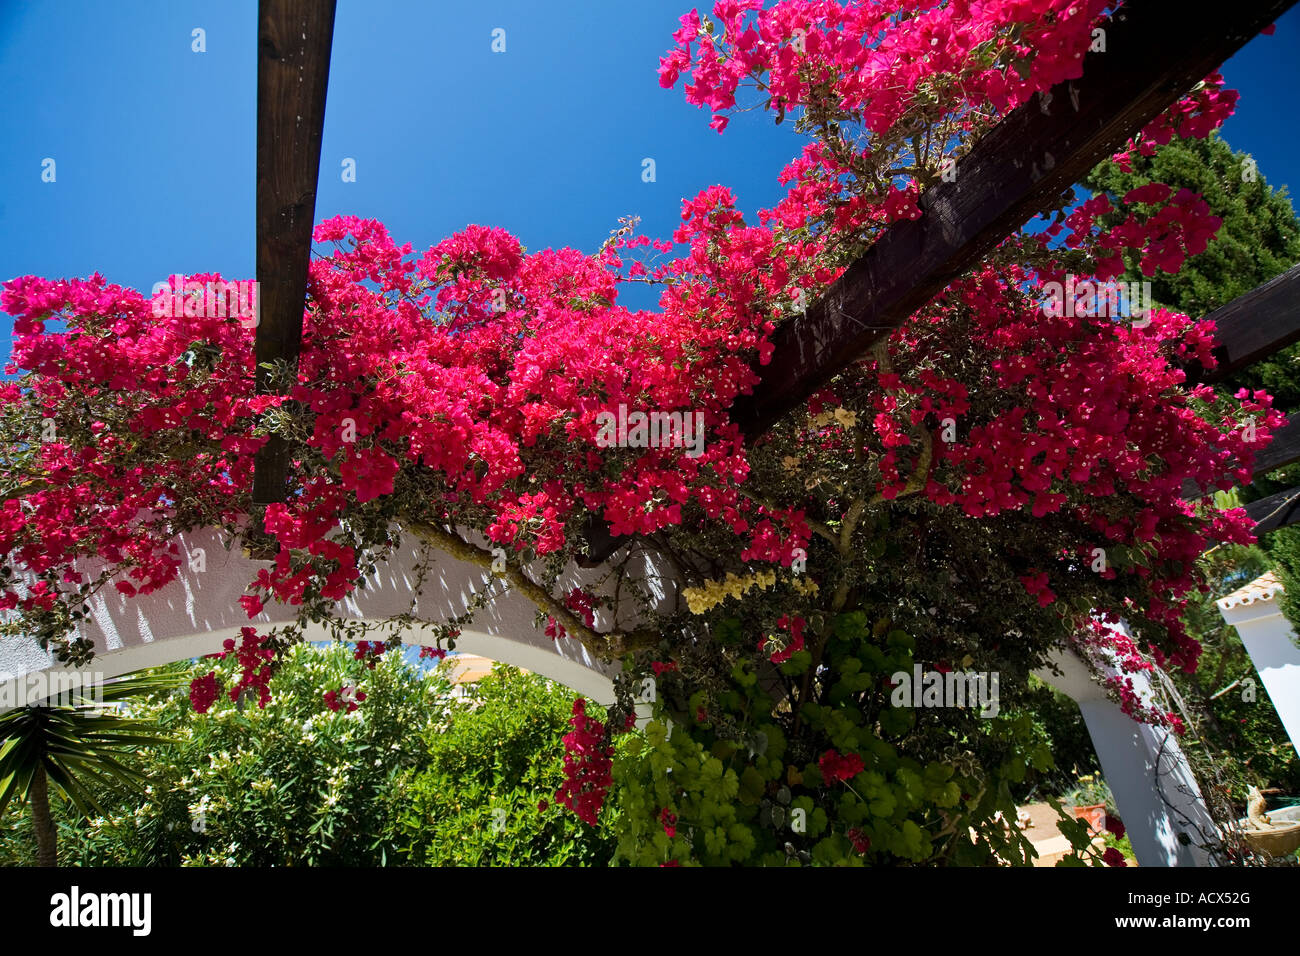 Bougainvillea growing outside villa in the Algarve Portugal - Stock Image